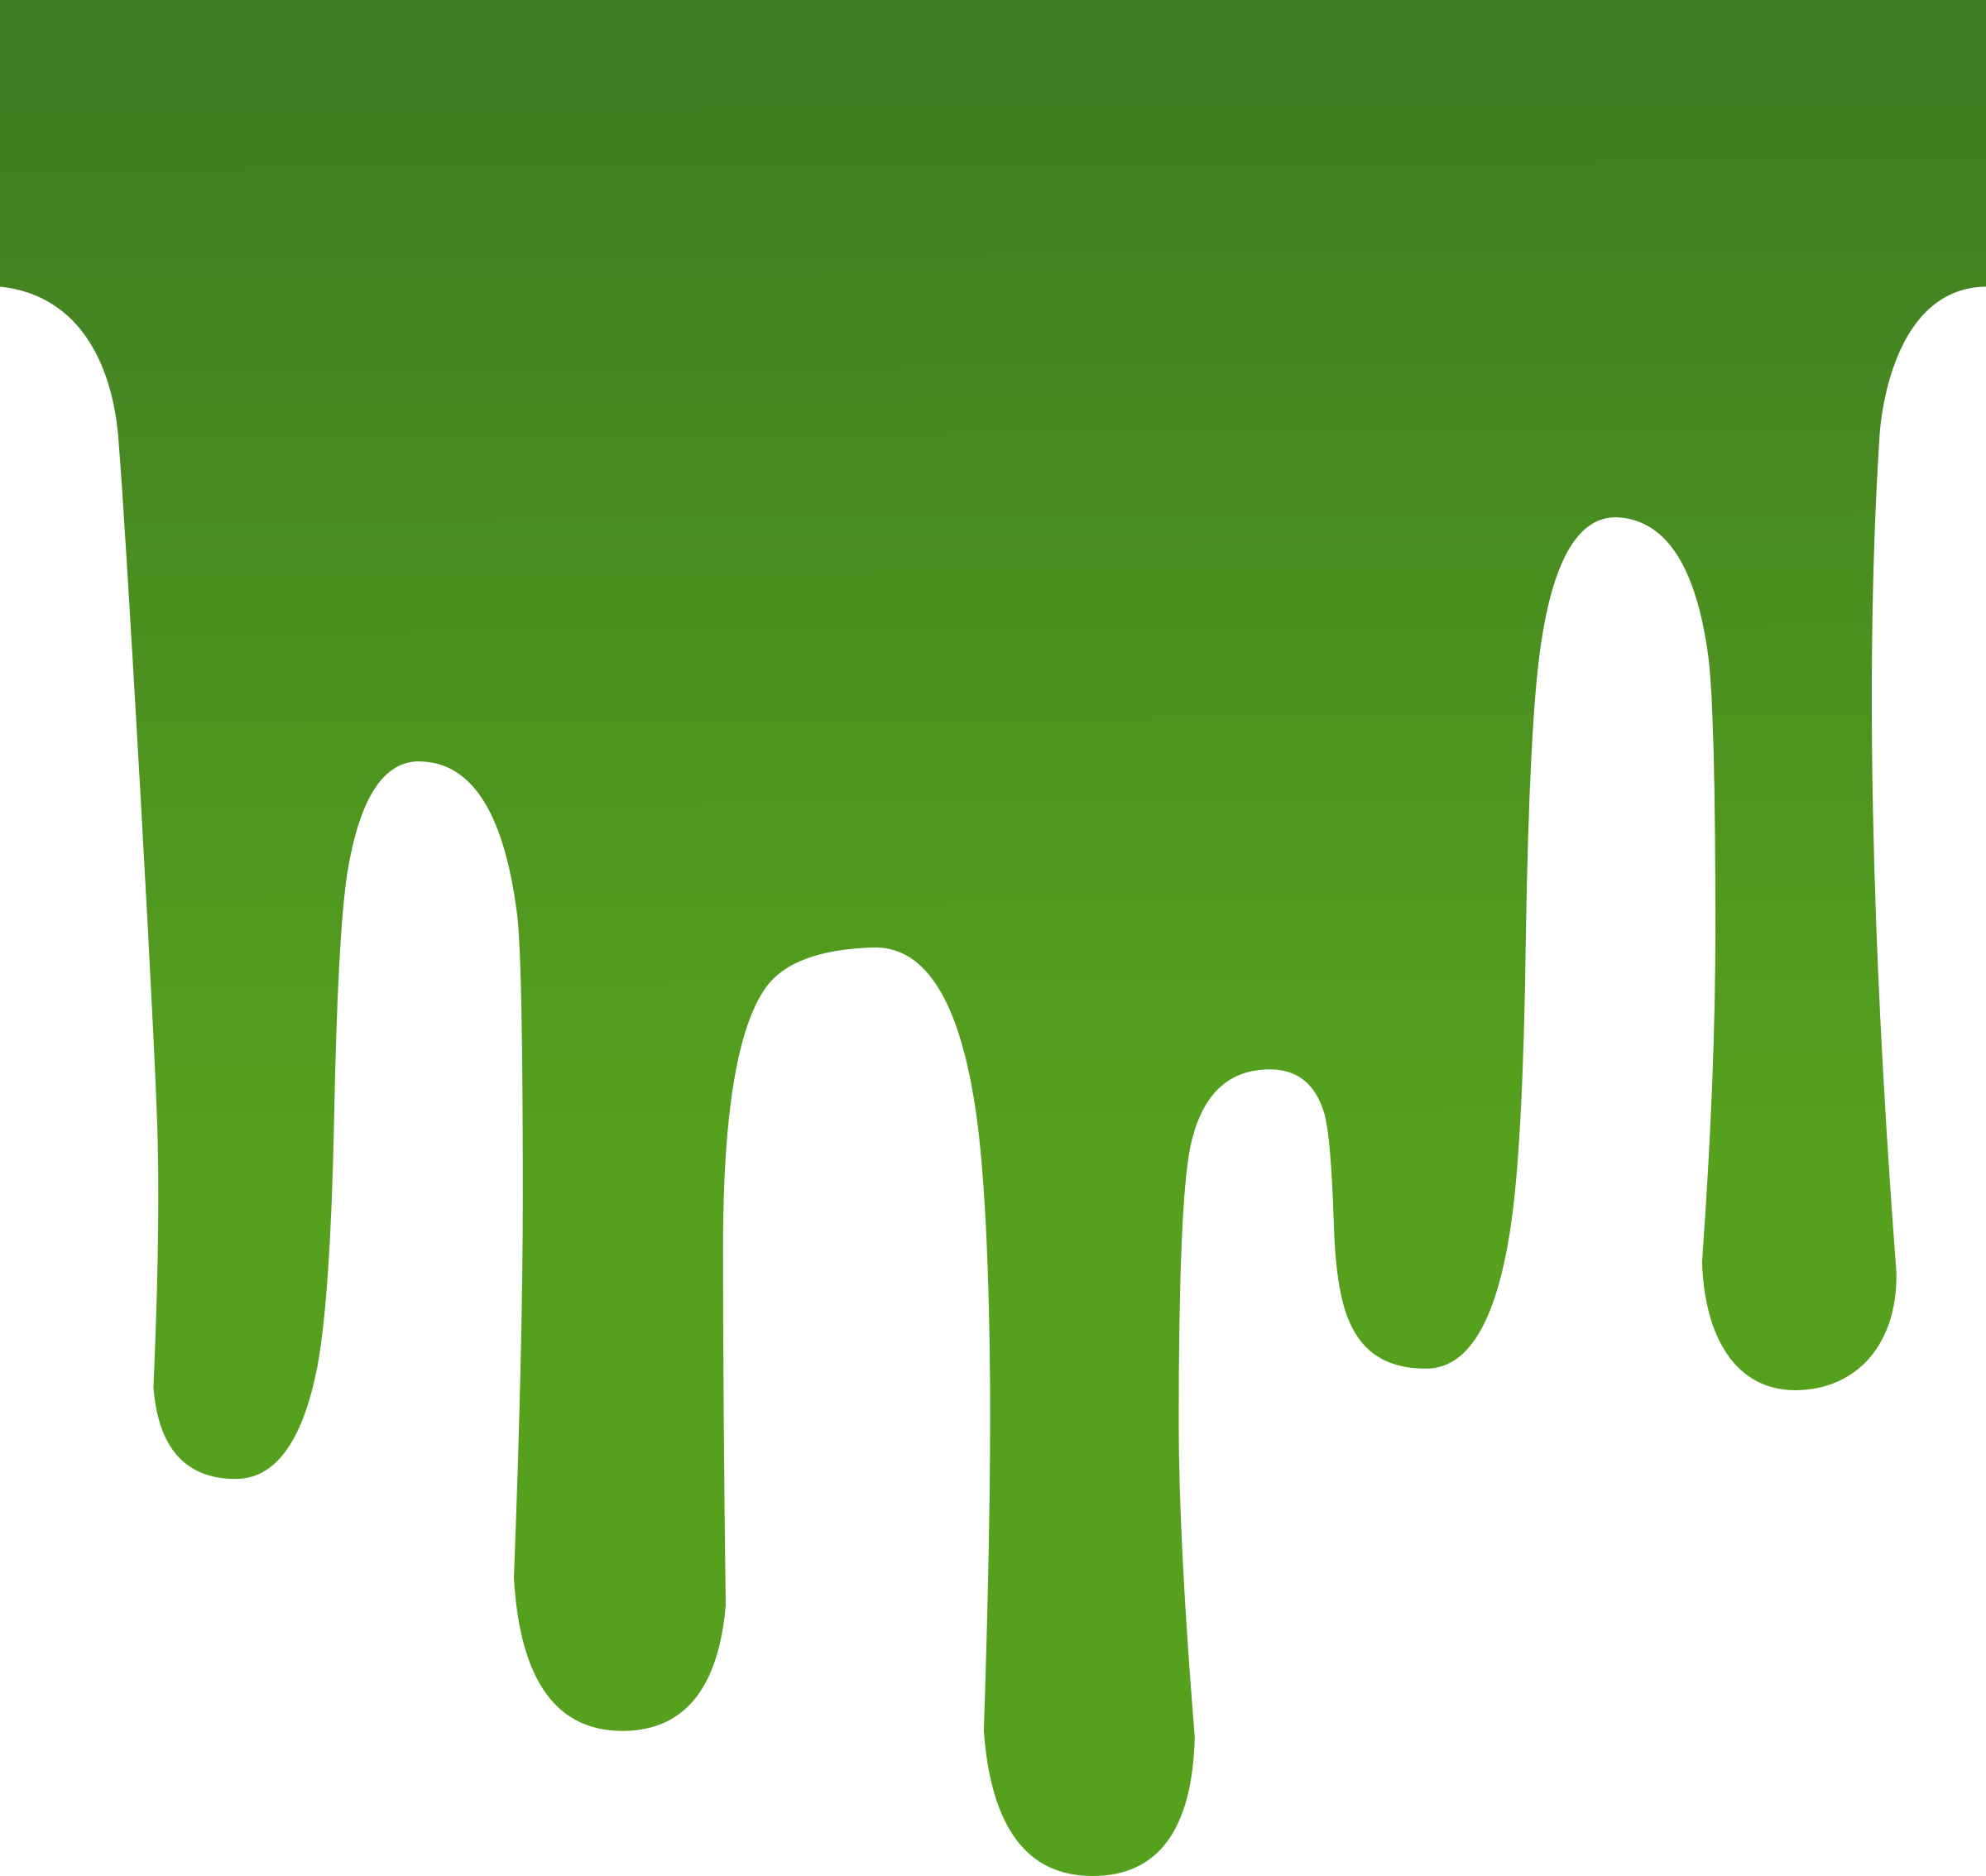 Green slime png. Icons free and downloads